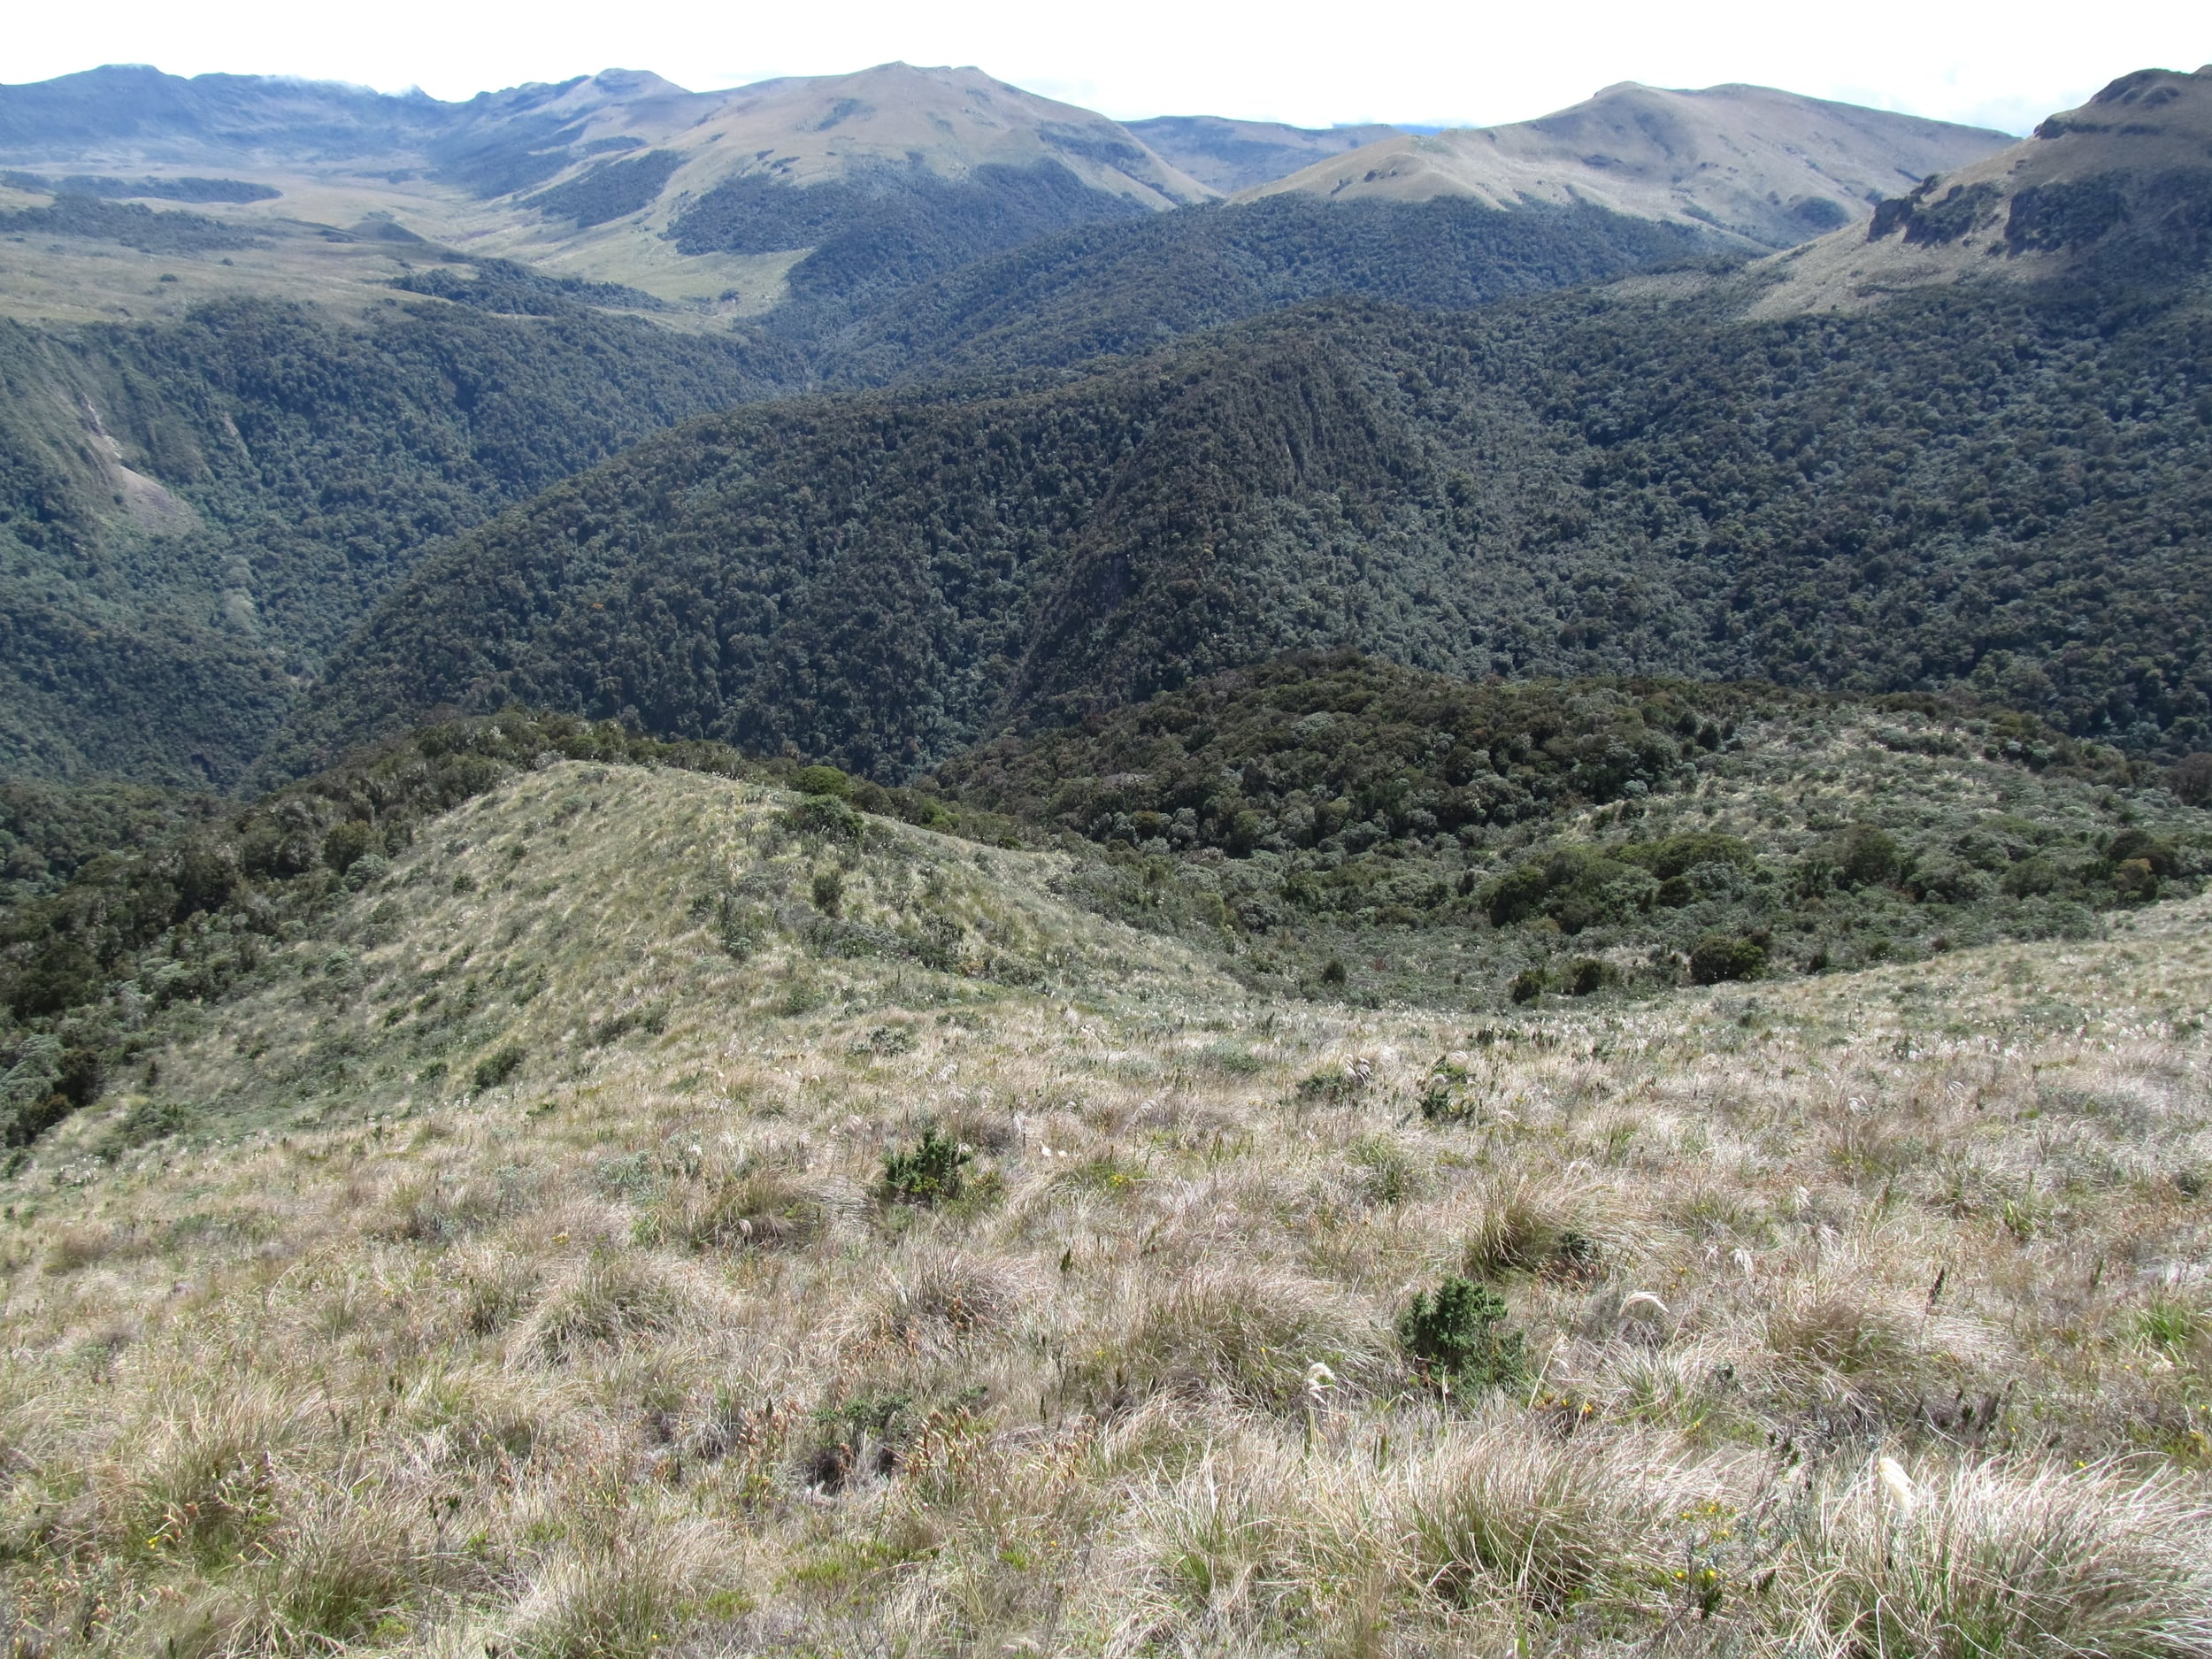 Above the forest lies the Paramo, it is a great place for seeing bears and wonderful views.